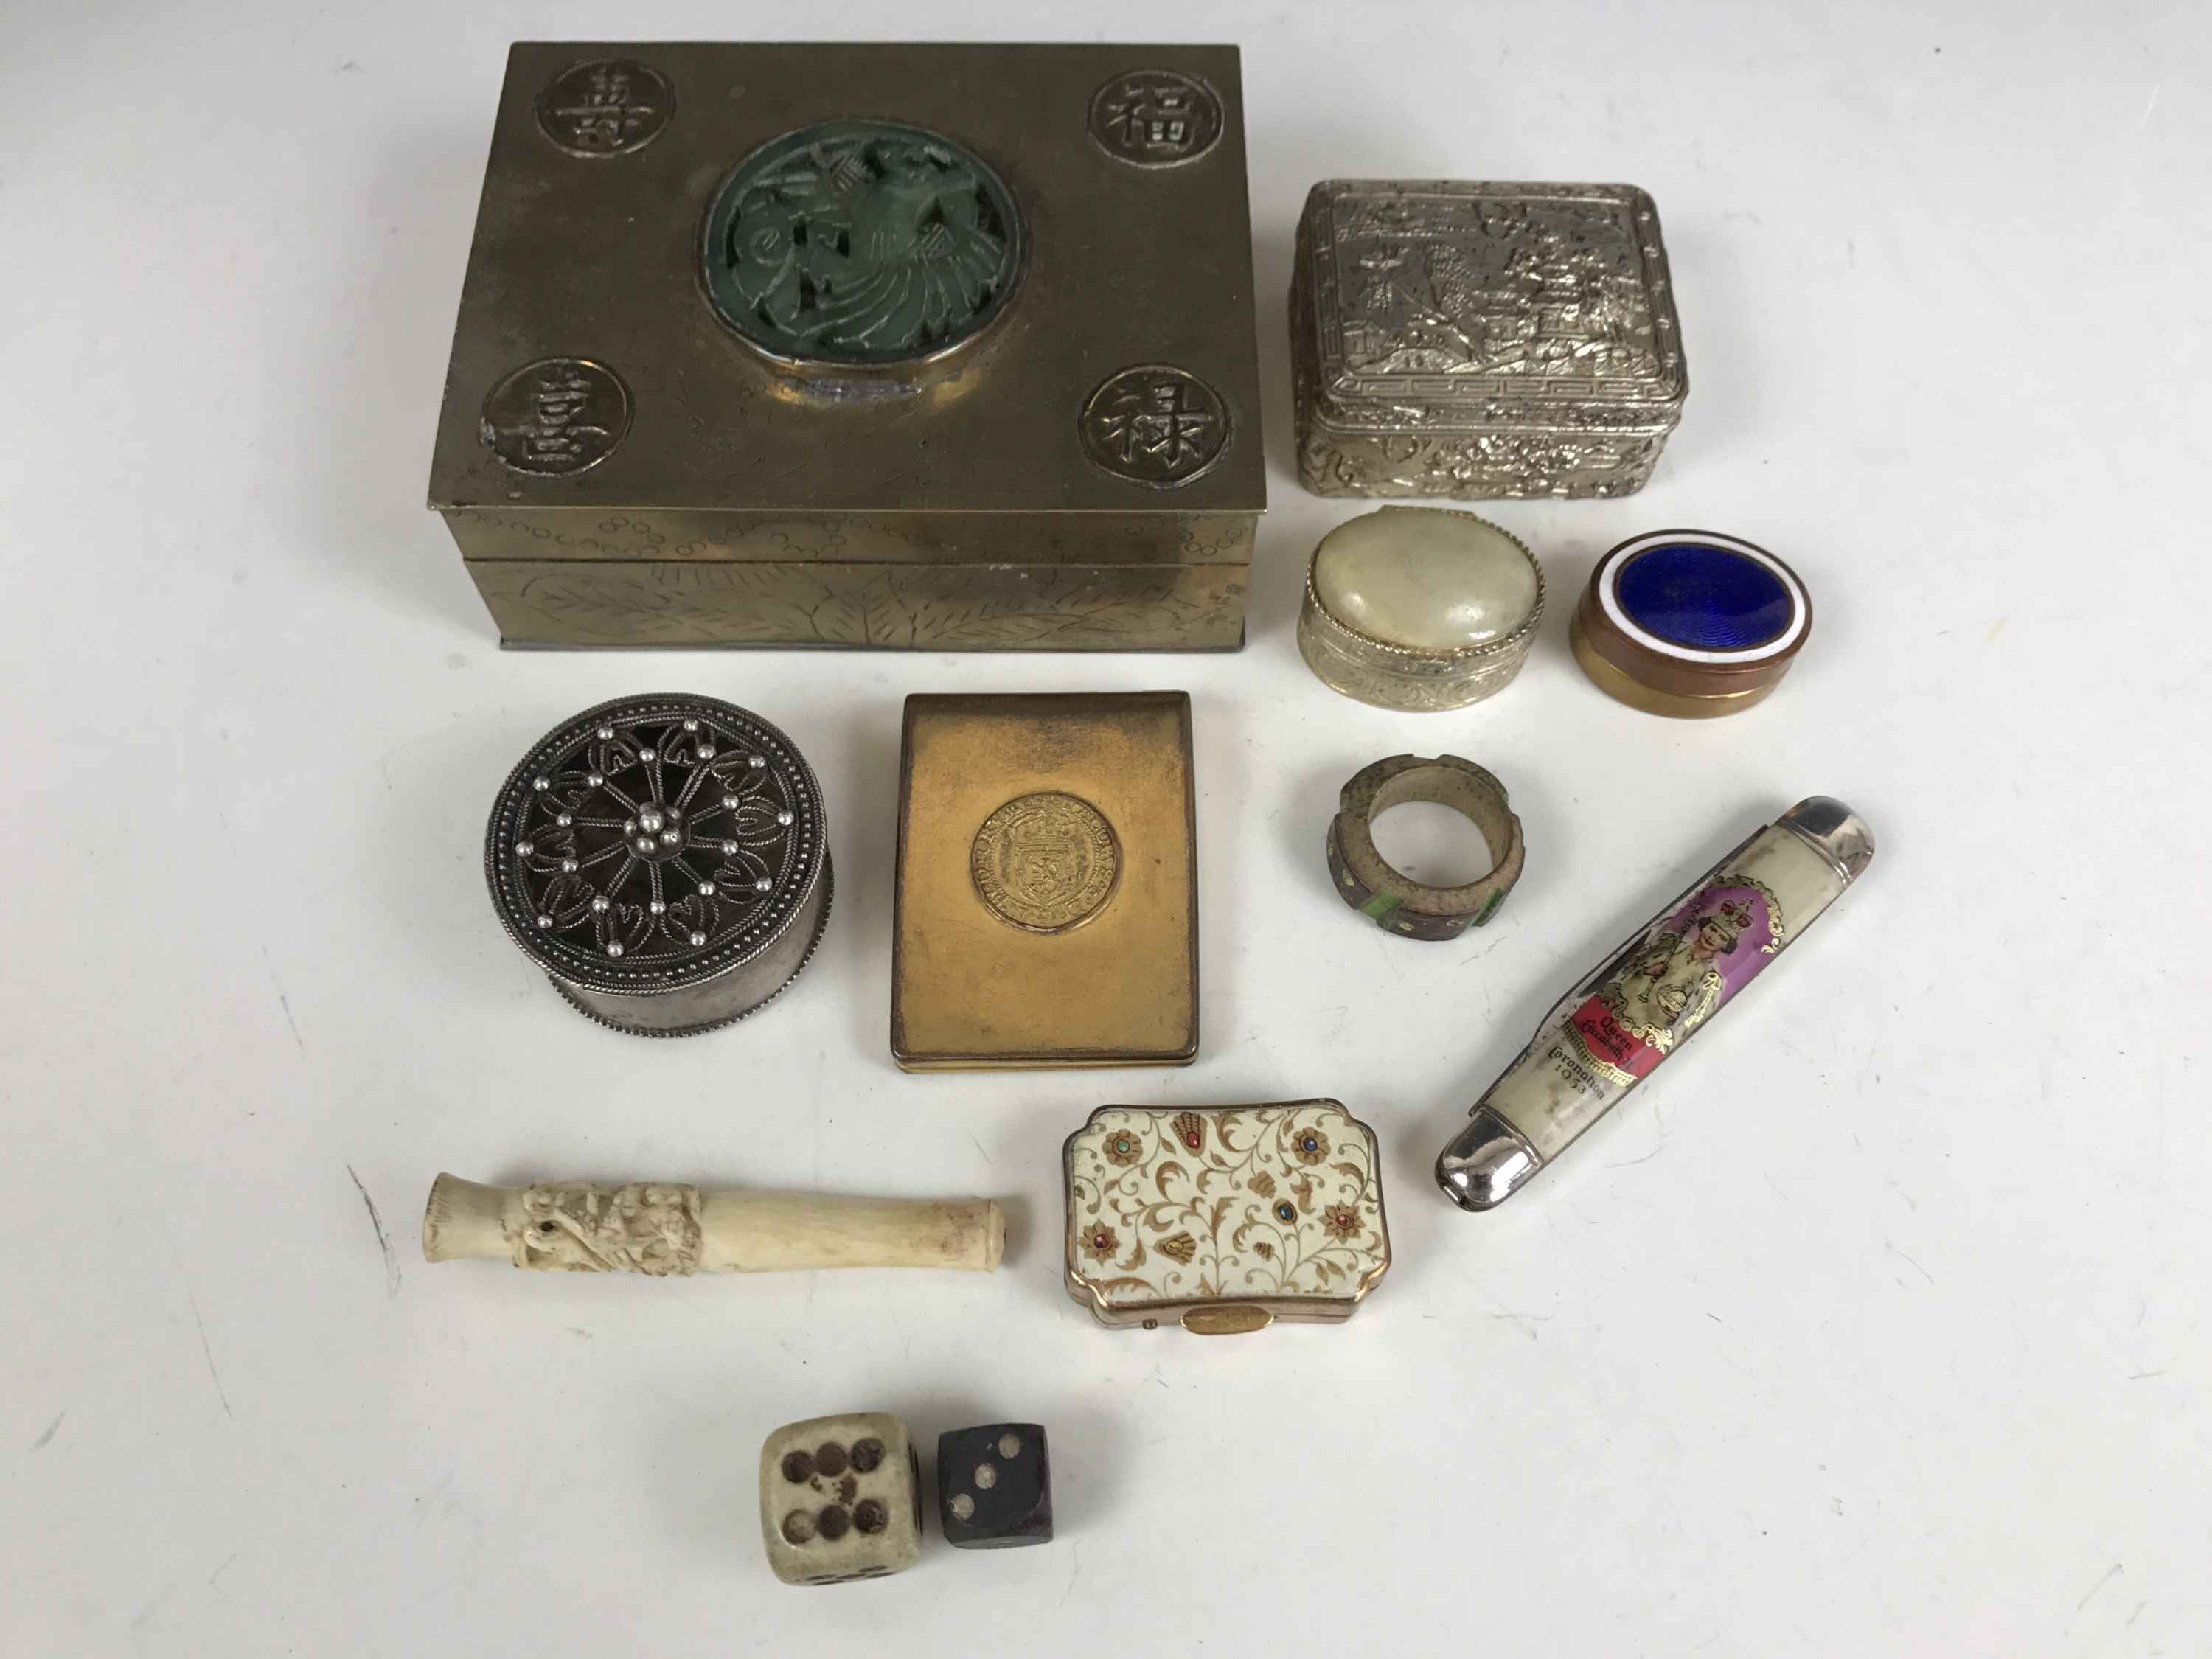 Lot 46 - Sundry collectors' items including a Chinese brass table cigarette box, various trinket and pill